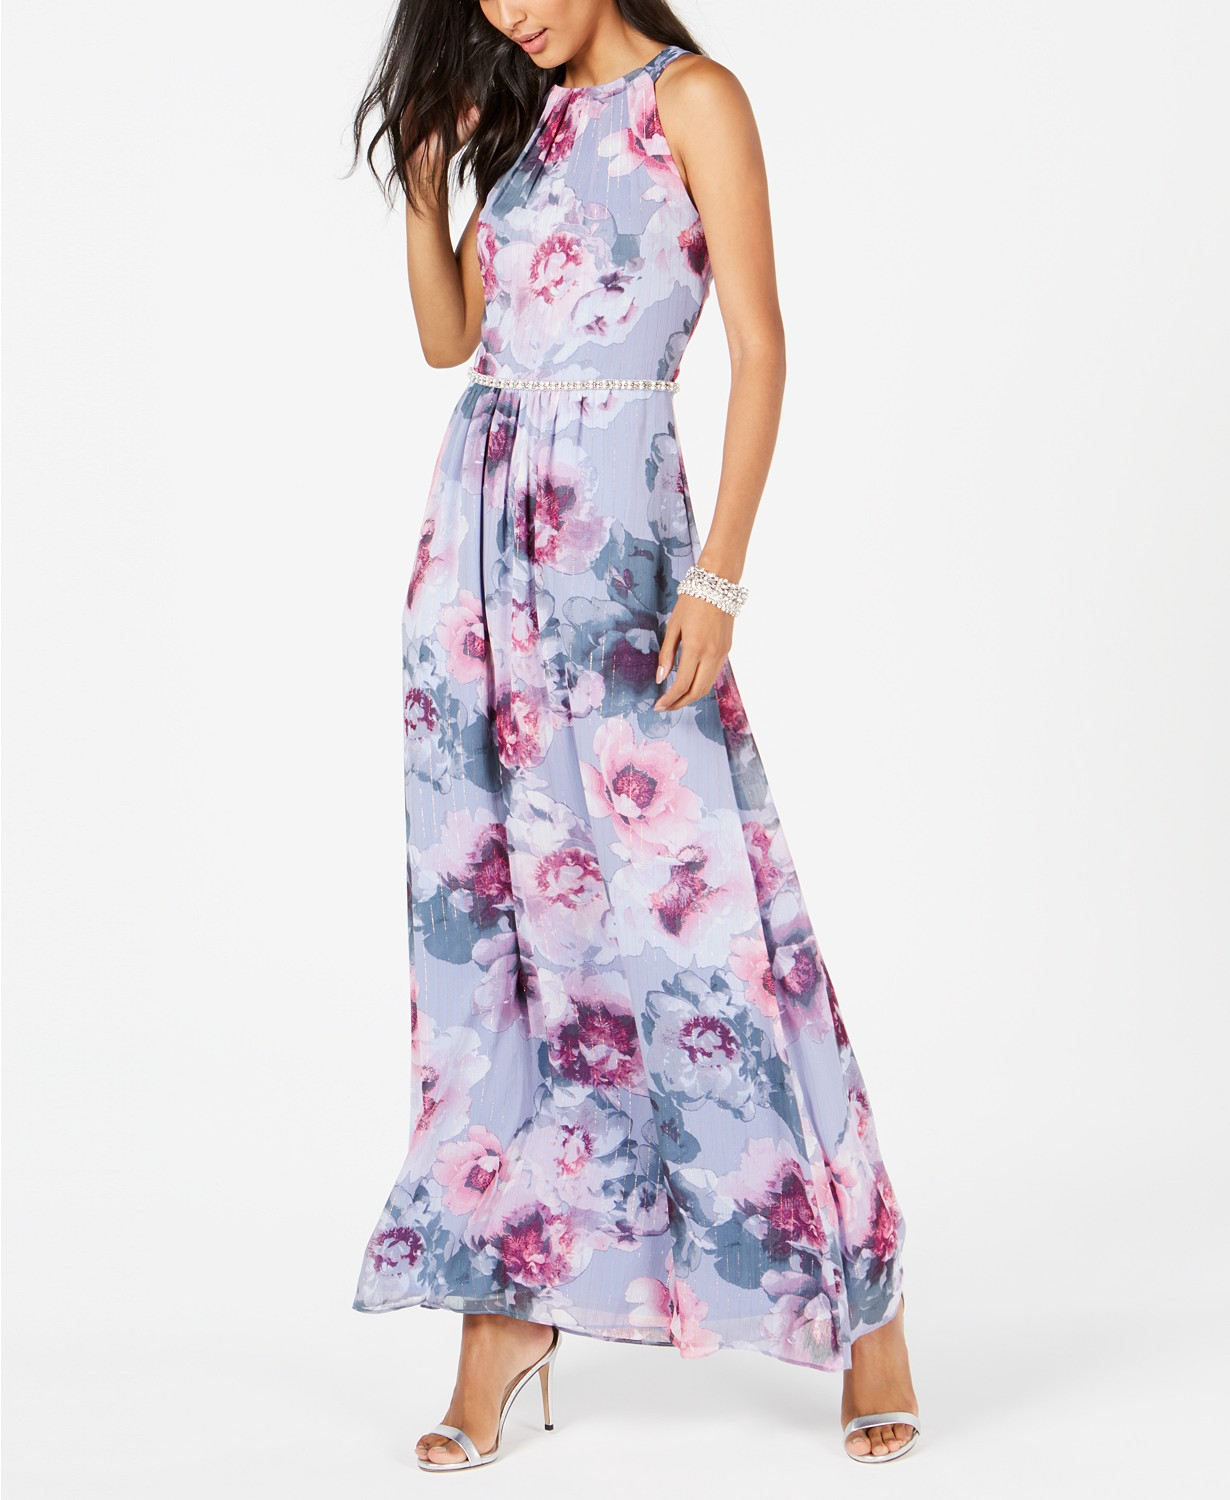 SL Fashions Women's Floral & Metallic Maxi Dress (Sky Blue)